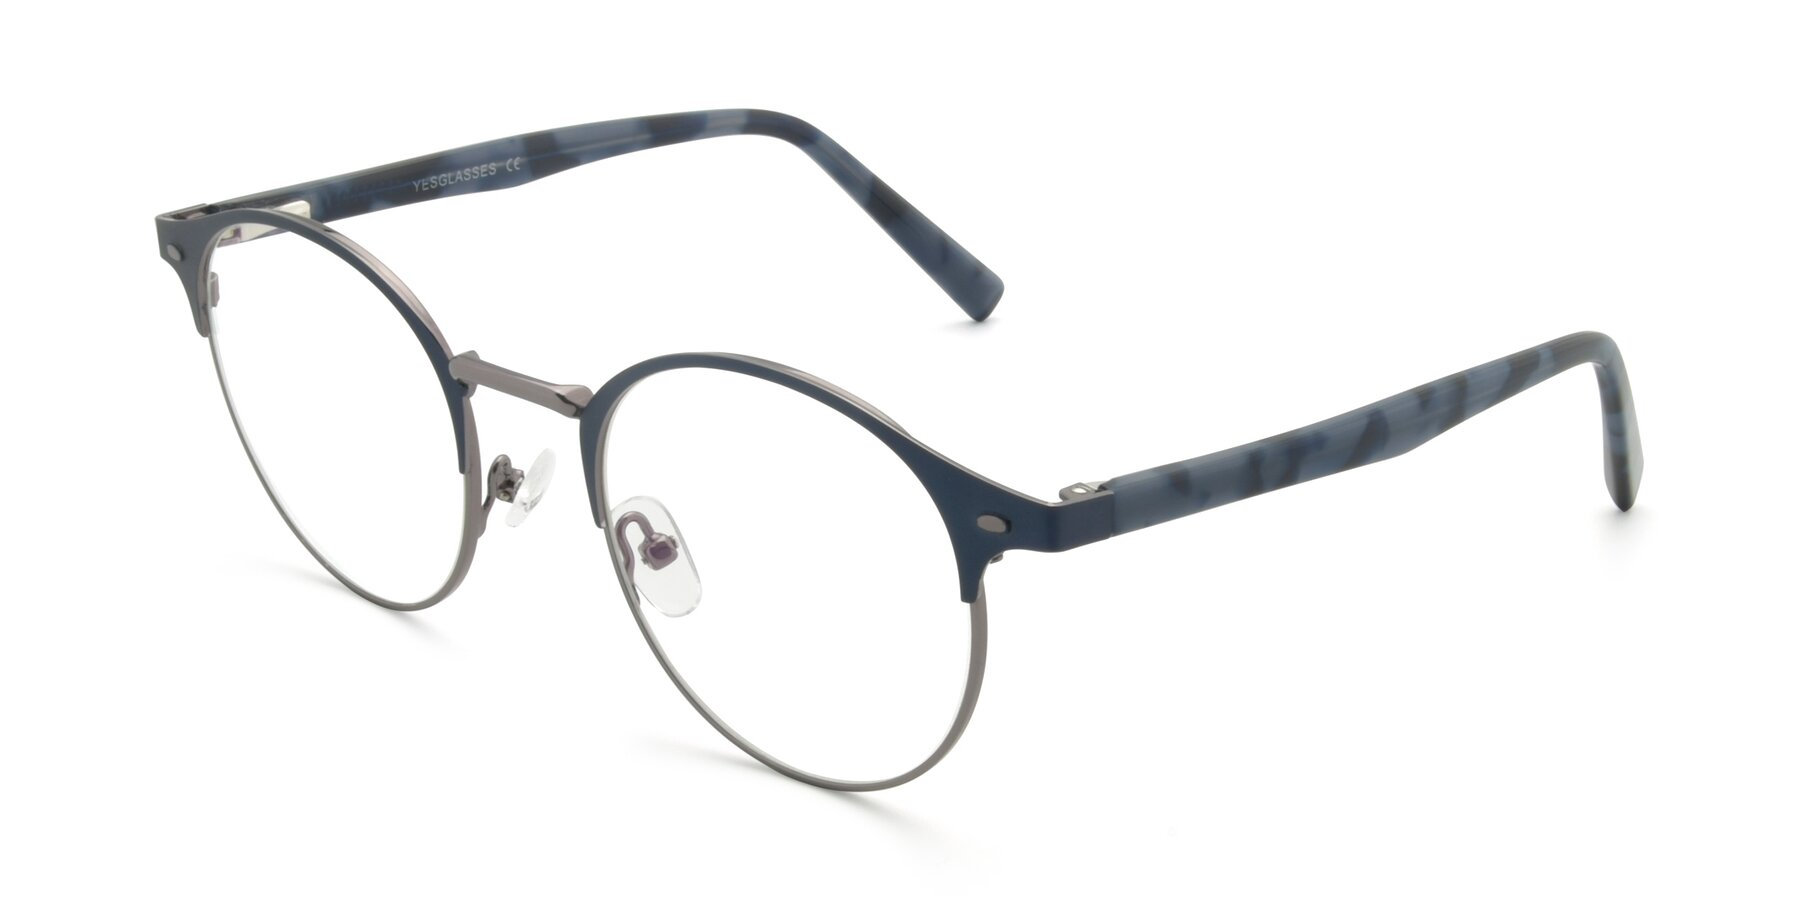 Angle of 9099 in Blue-Gunmetal with Clear Eyeglass Lenses